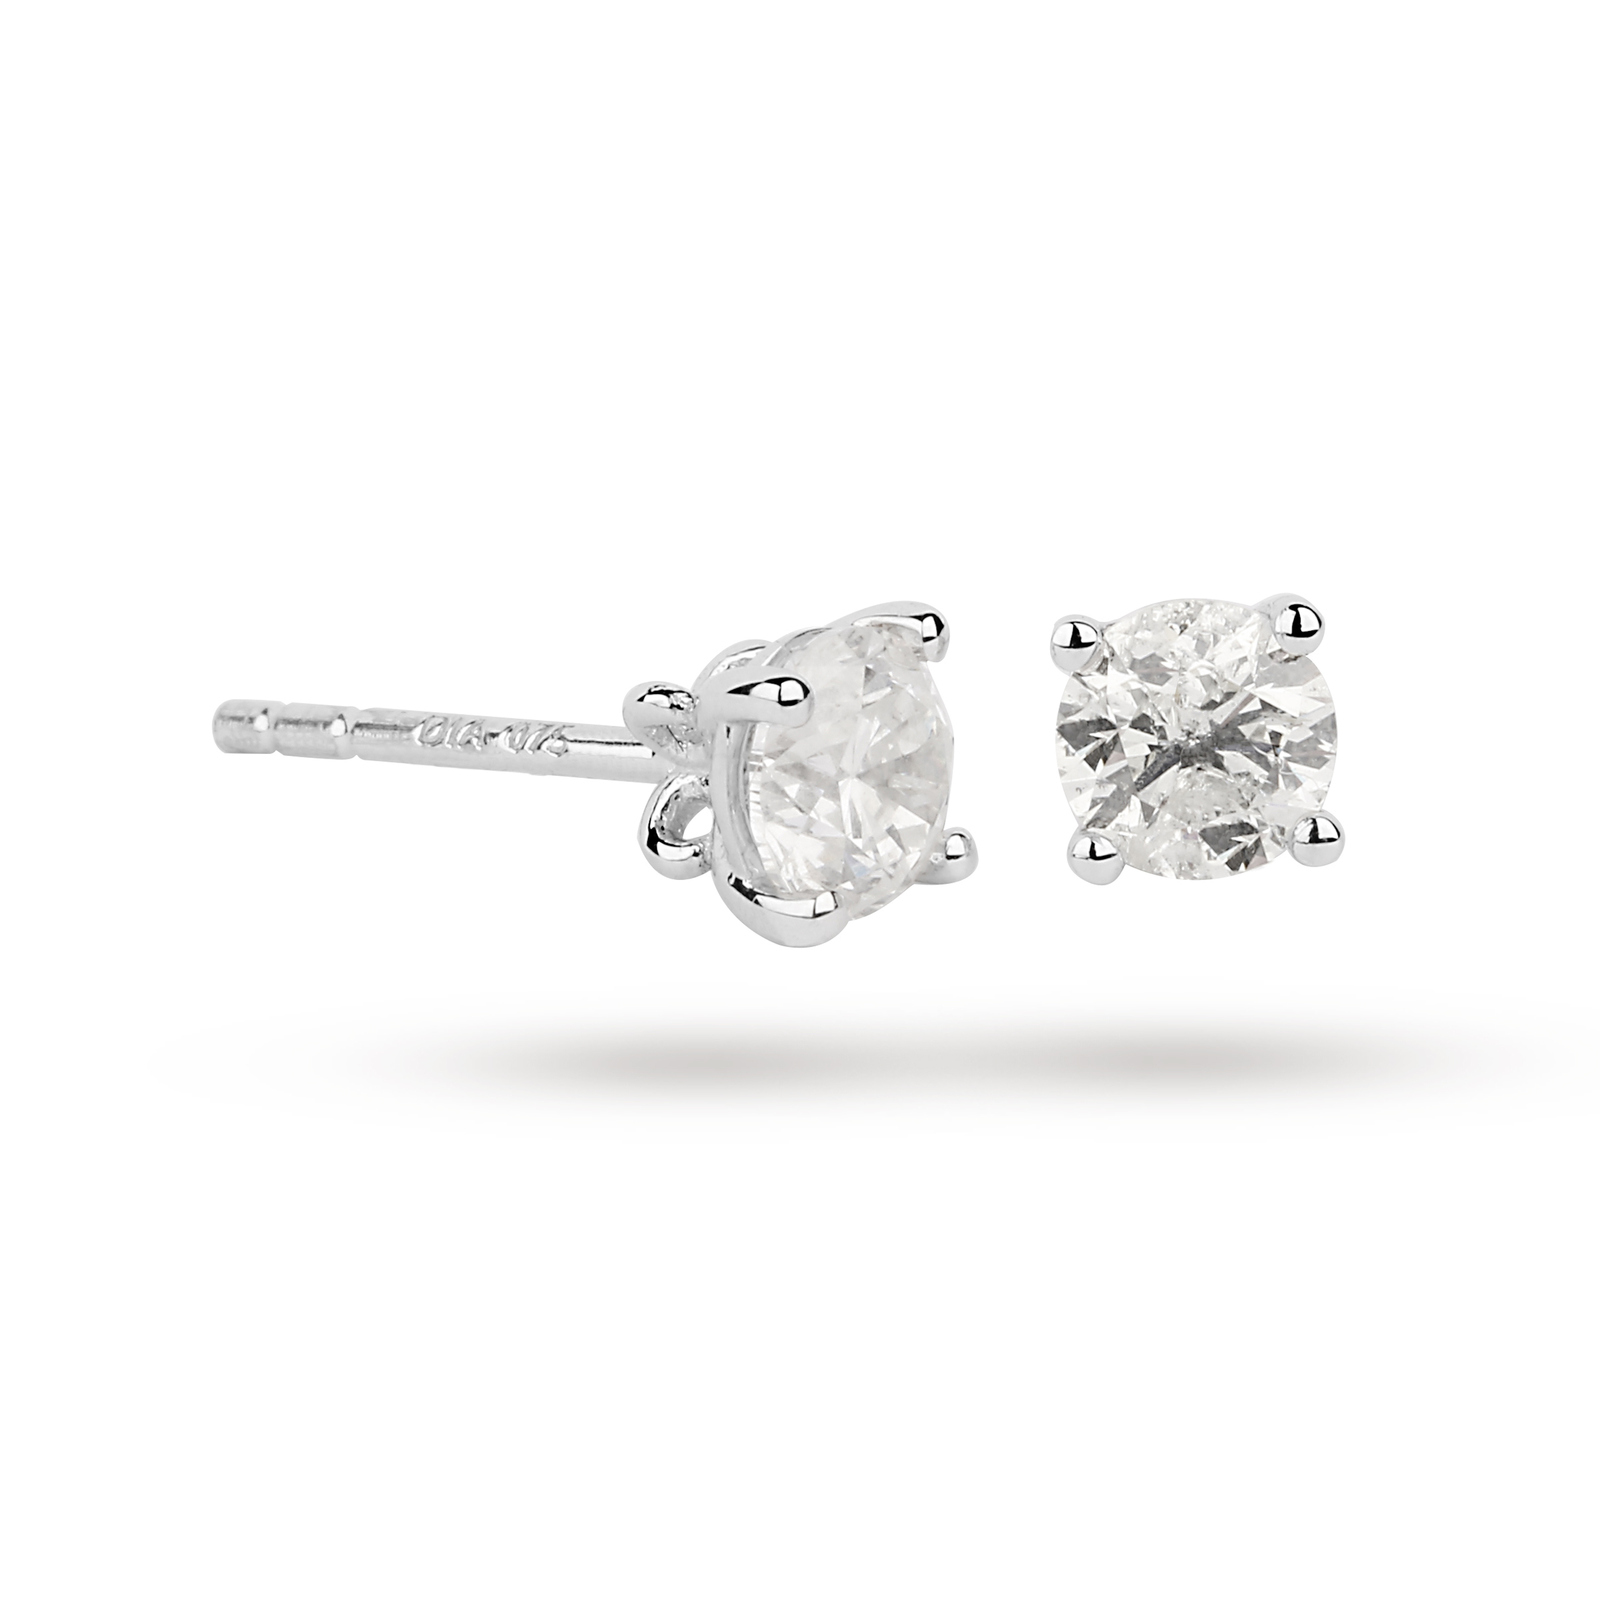 18ct White Gold 0.75ct Brilliant Cut Stud Earrings